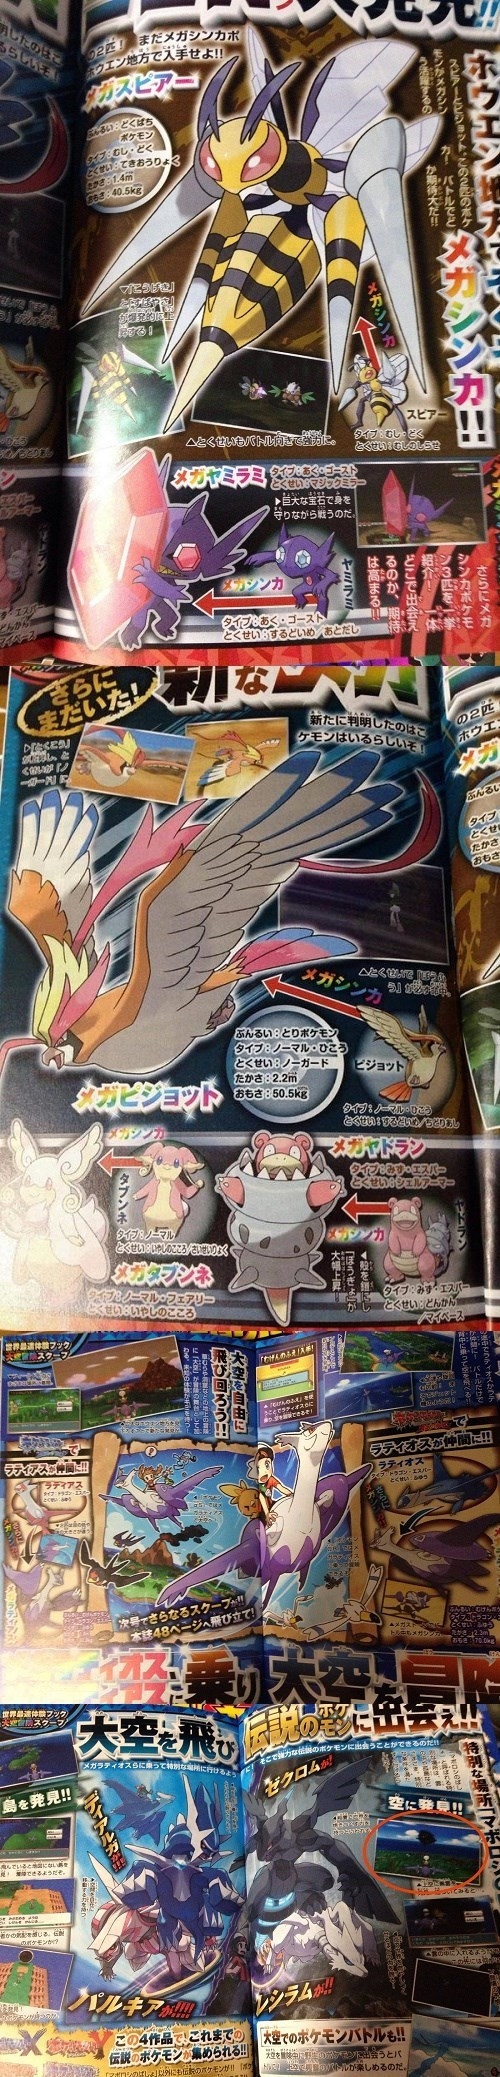 corocoro serebii mega latias mega latios ORAS mega beedrill mega pidgeot Video Game Coverage - 8343444736